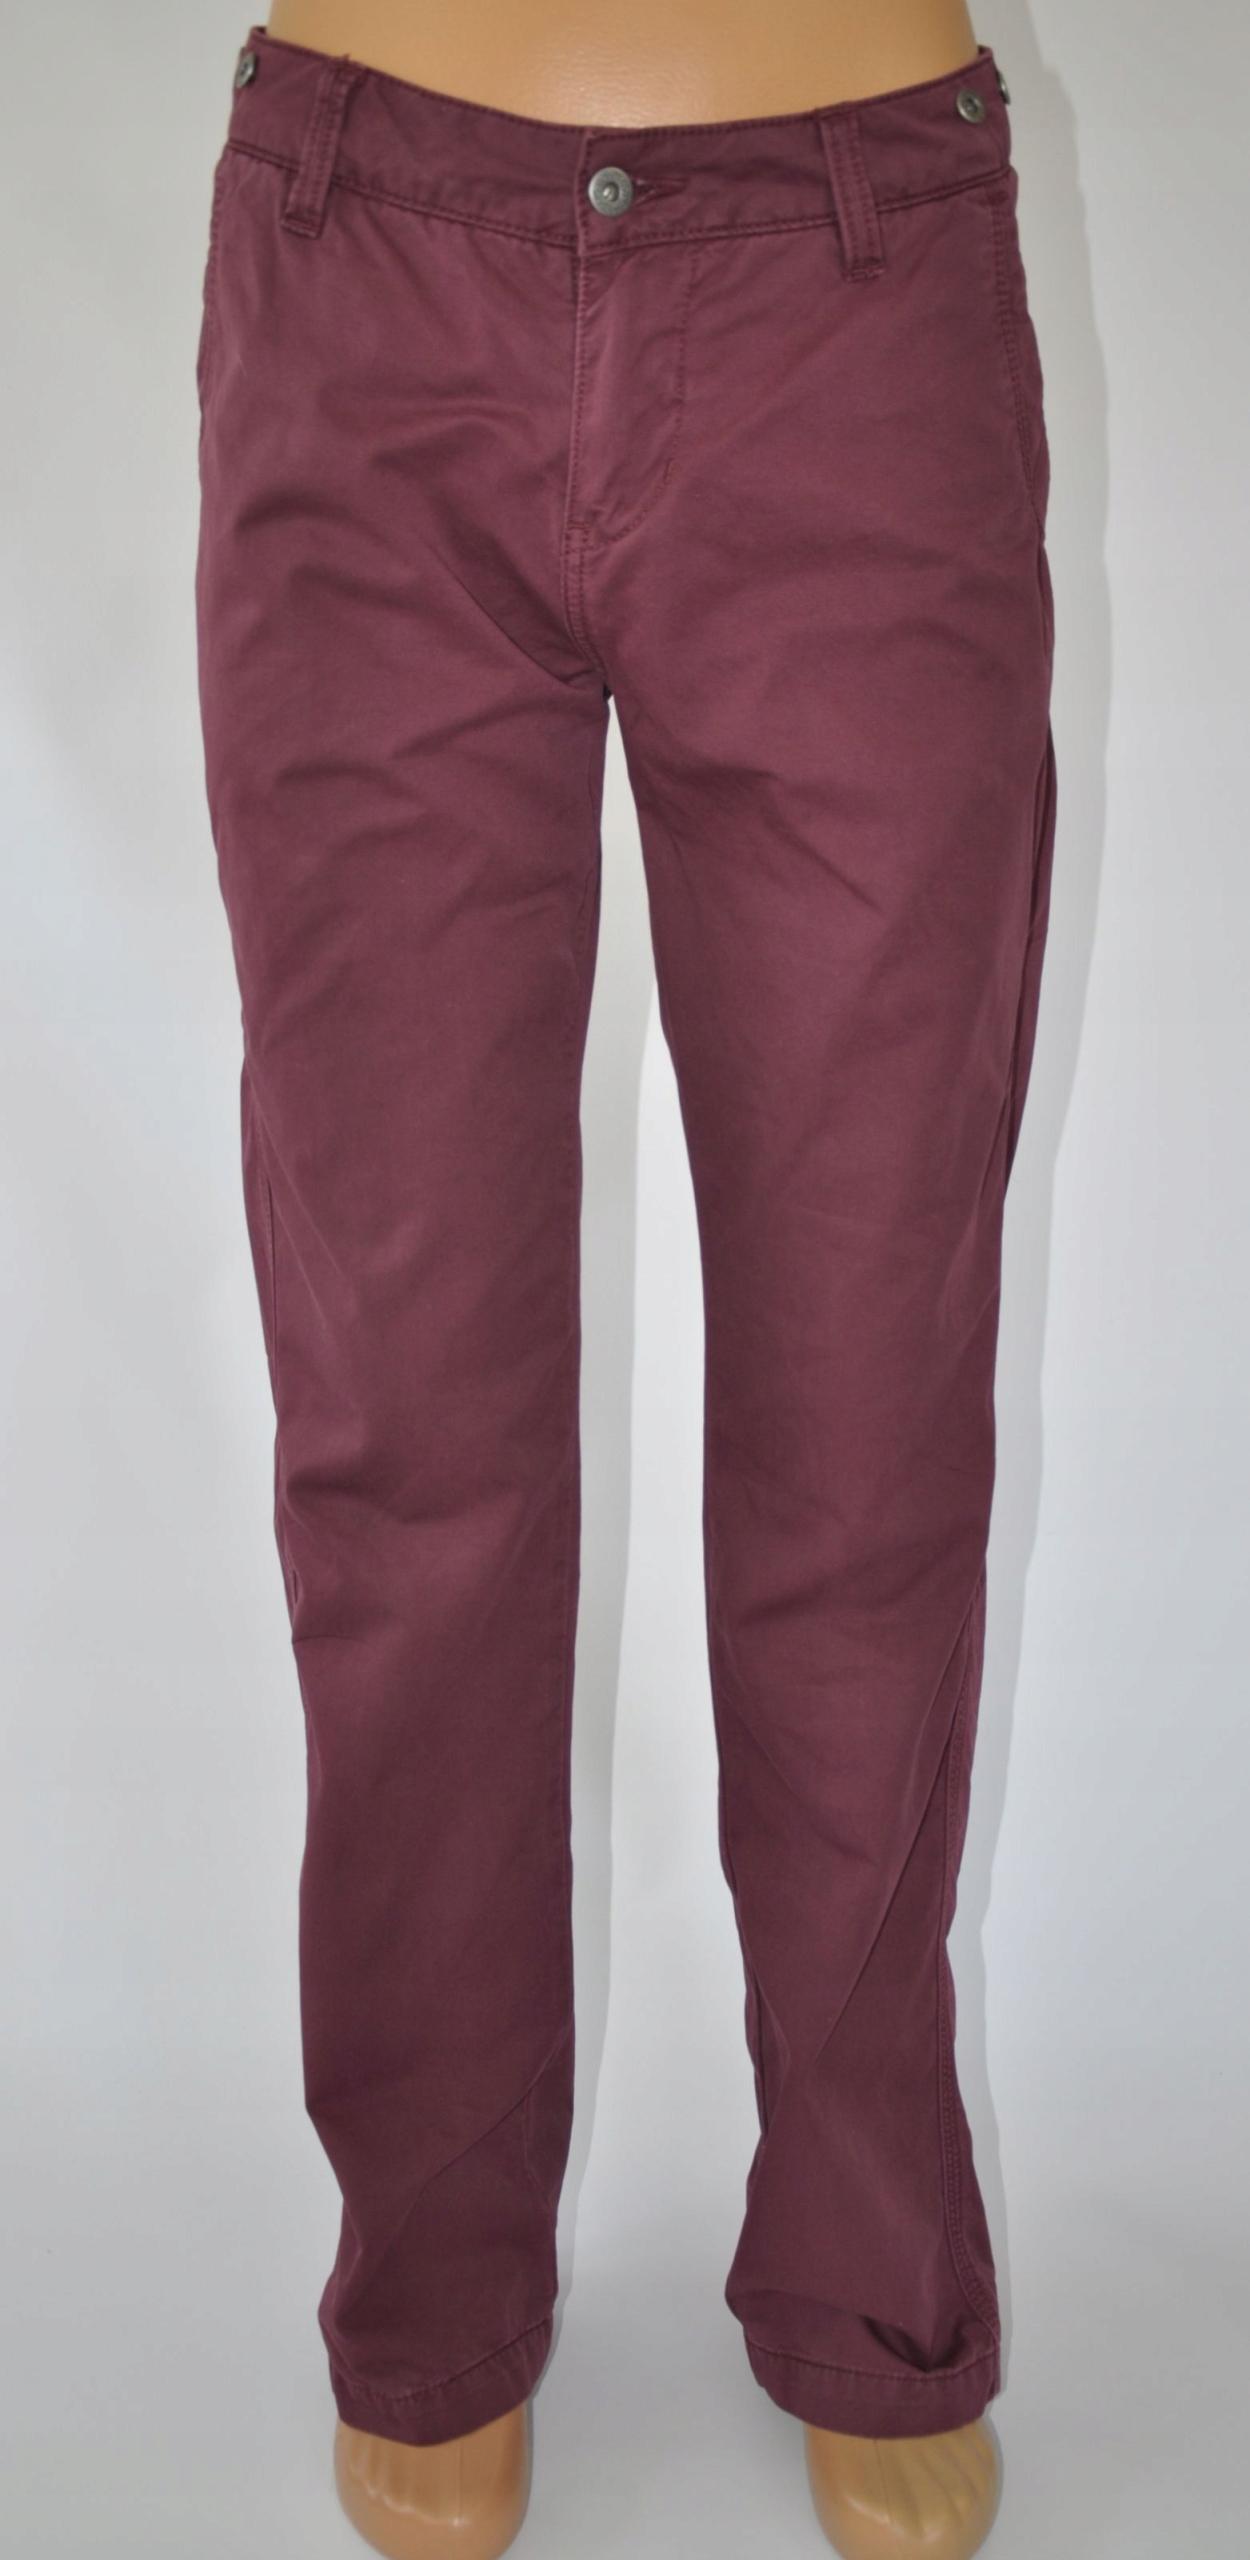 TOMMY HILFIGER DENIM spodnie bordo 28/32 pas 84 cm